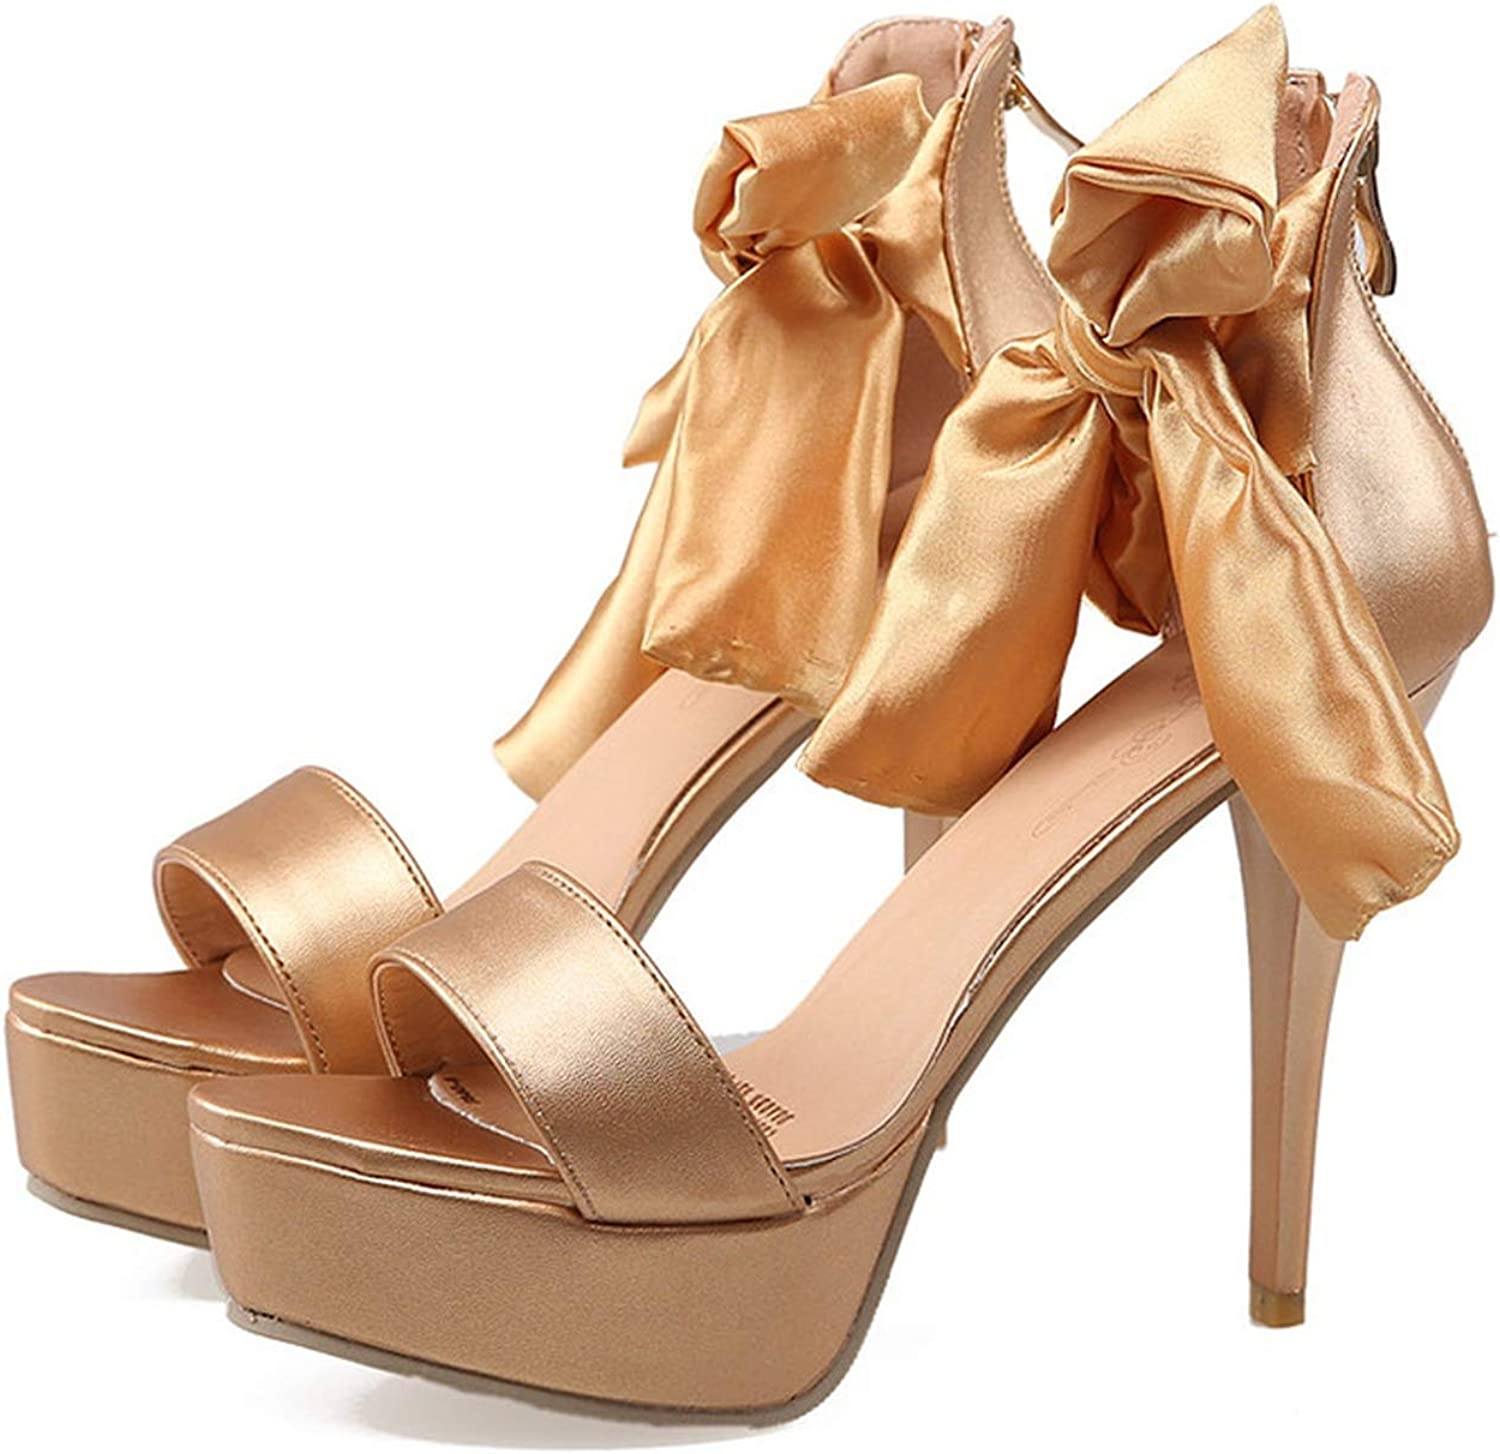 Woman gold Super High Thin Heels Ankle Strap Pumps Butterfly-Knot Zip Sandals for Women